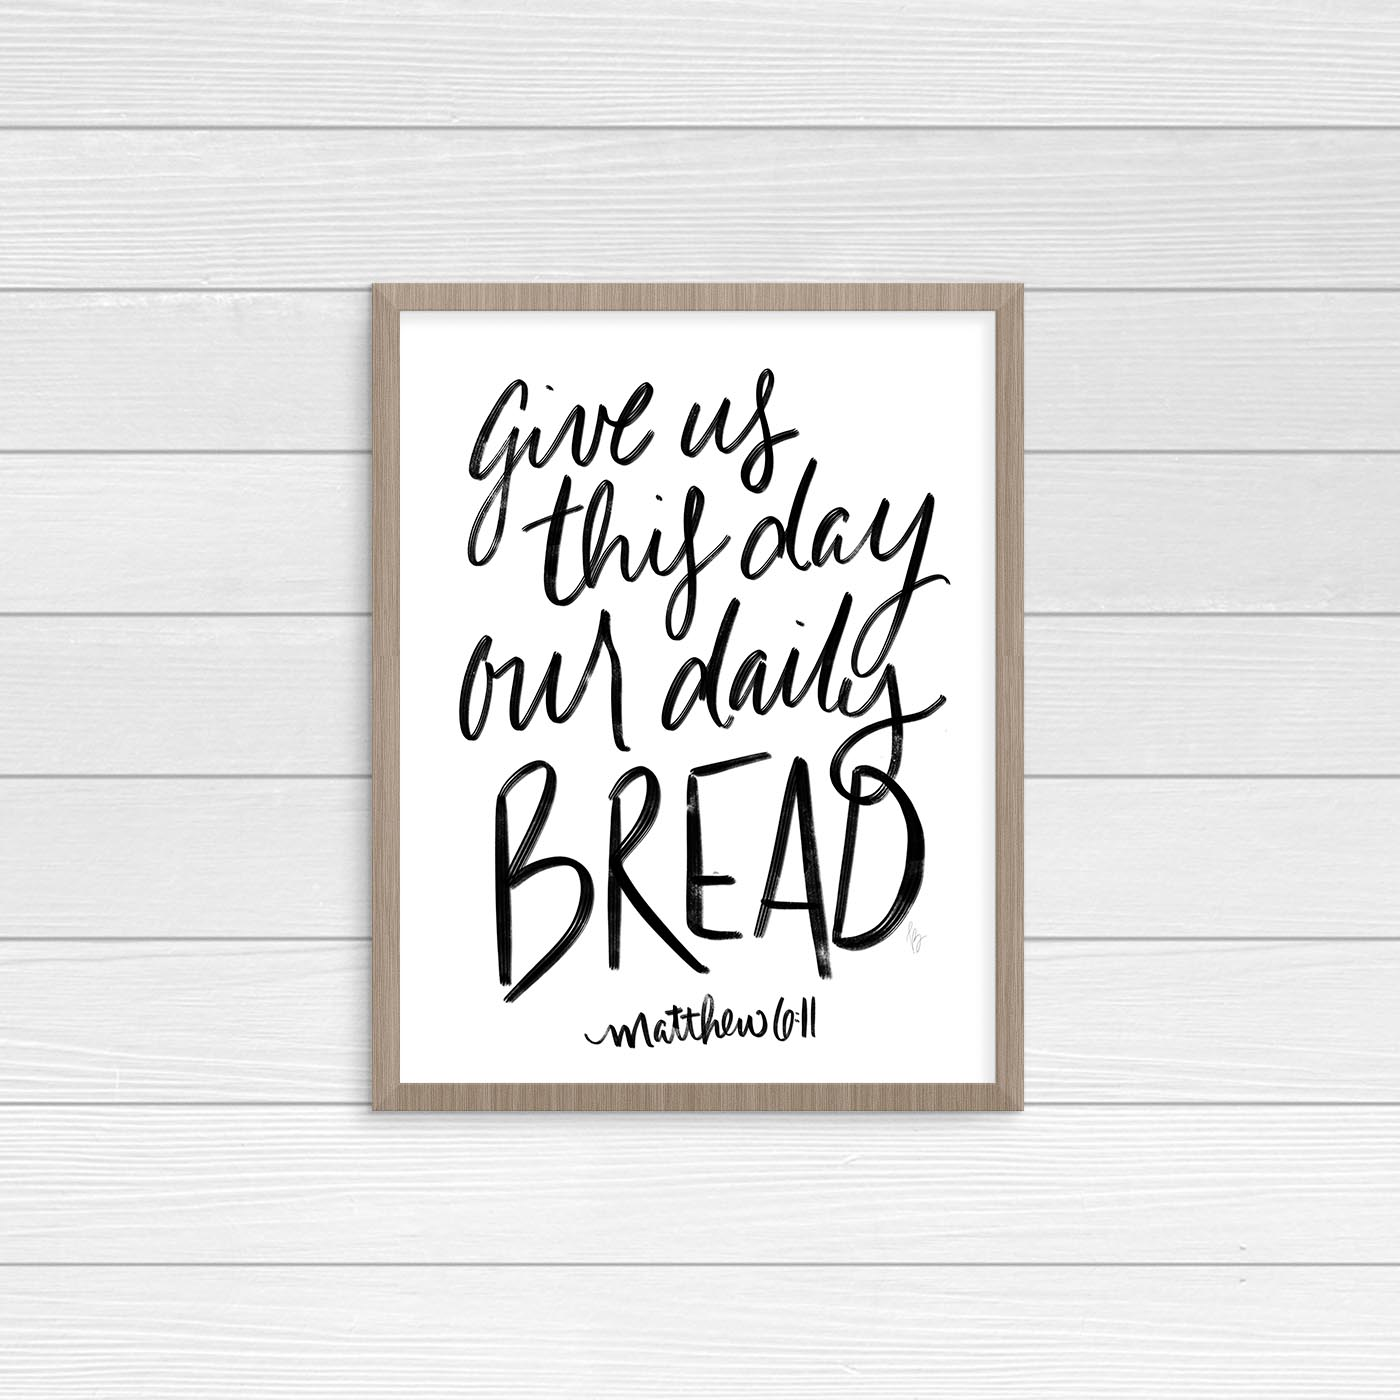 Find hand lettered wall art and Bible study resources in the Shop.